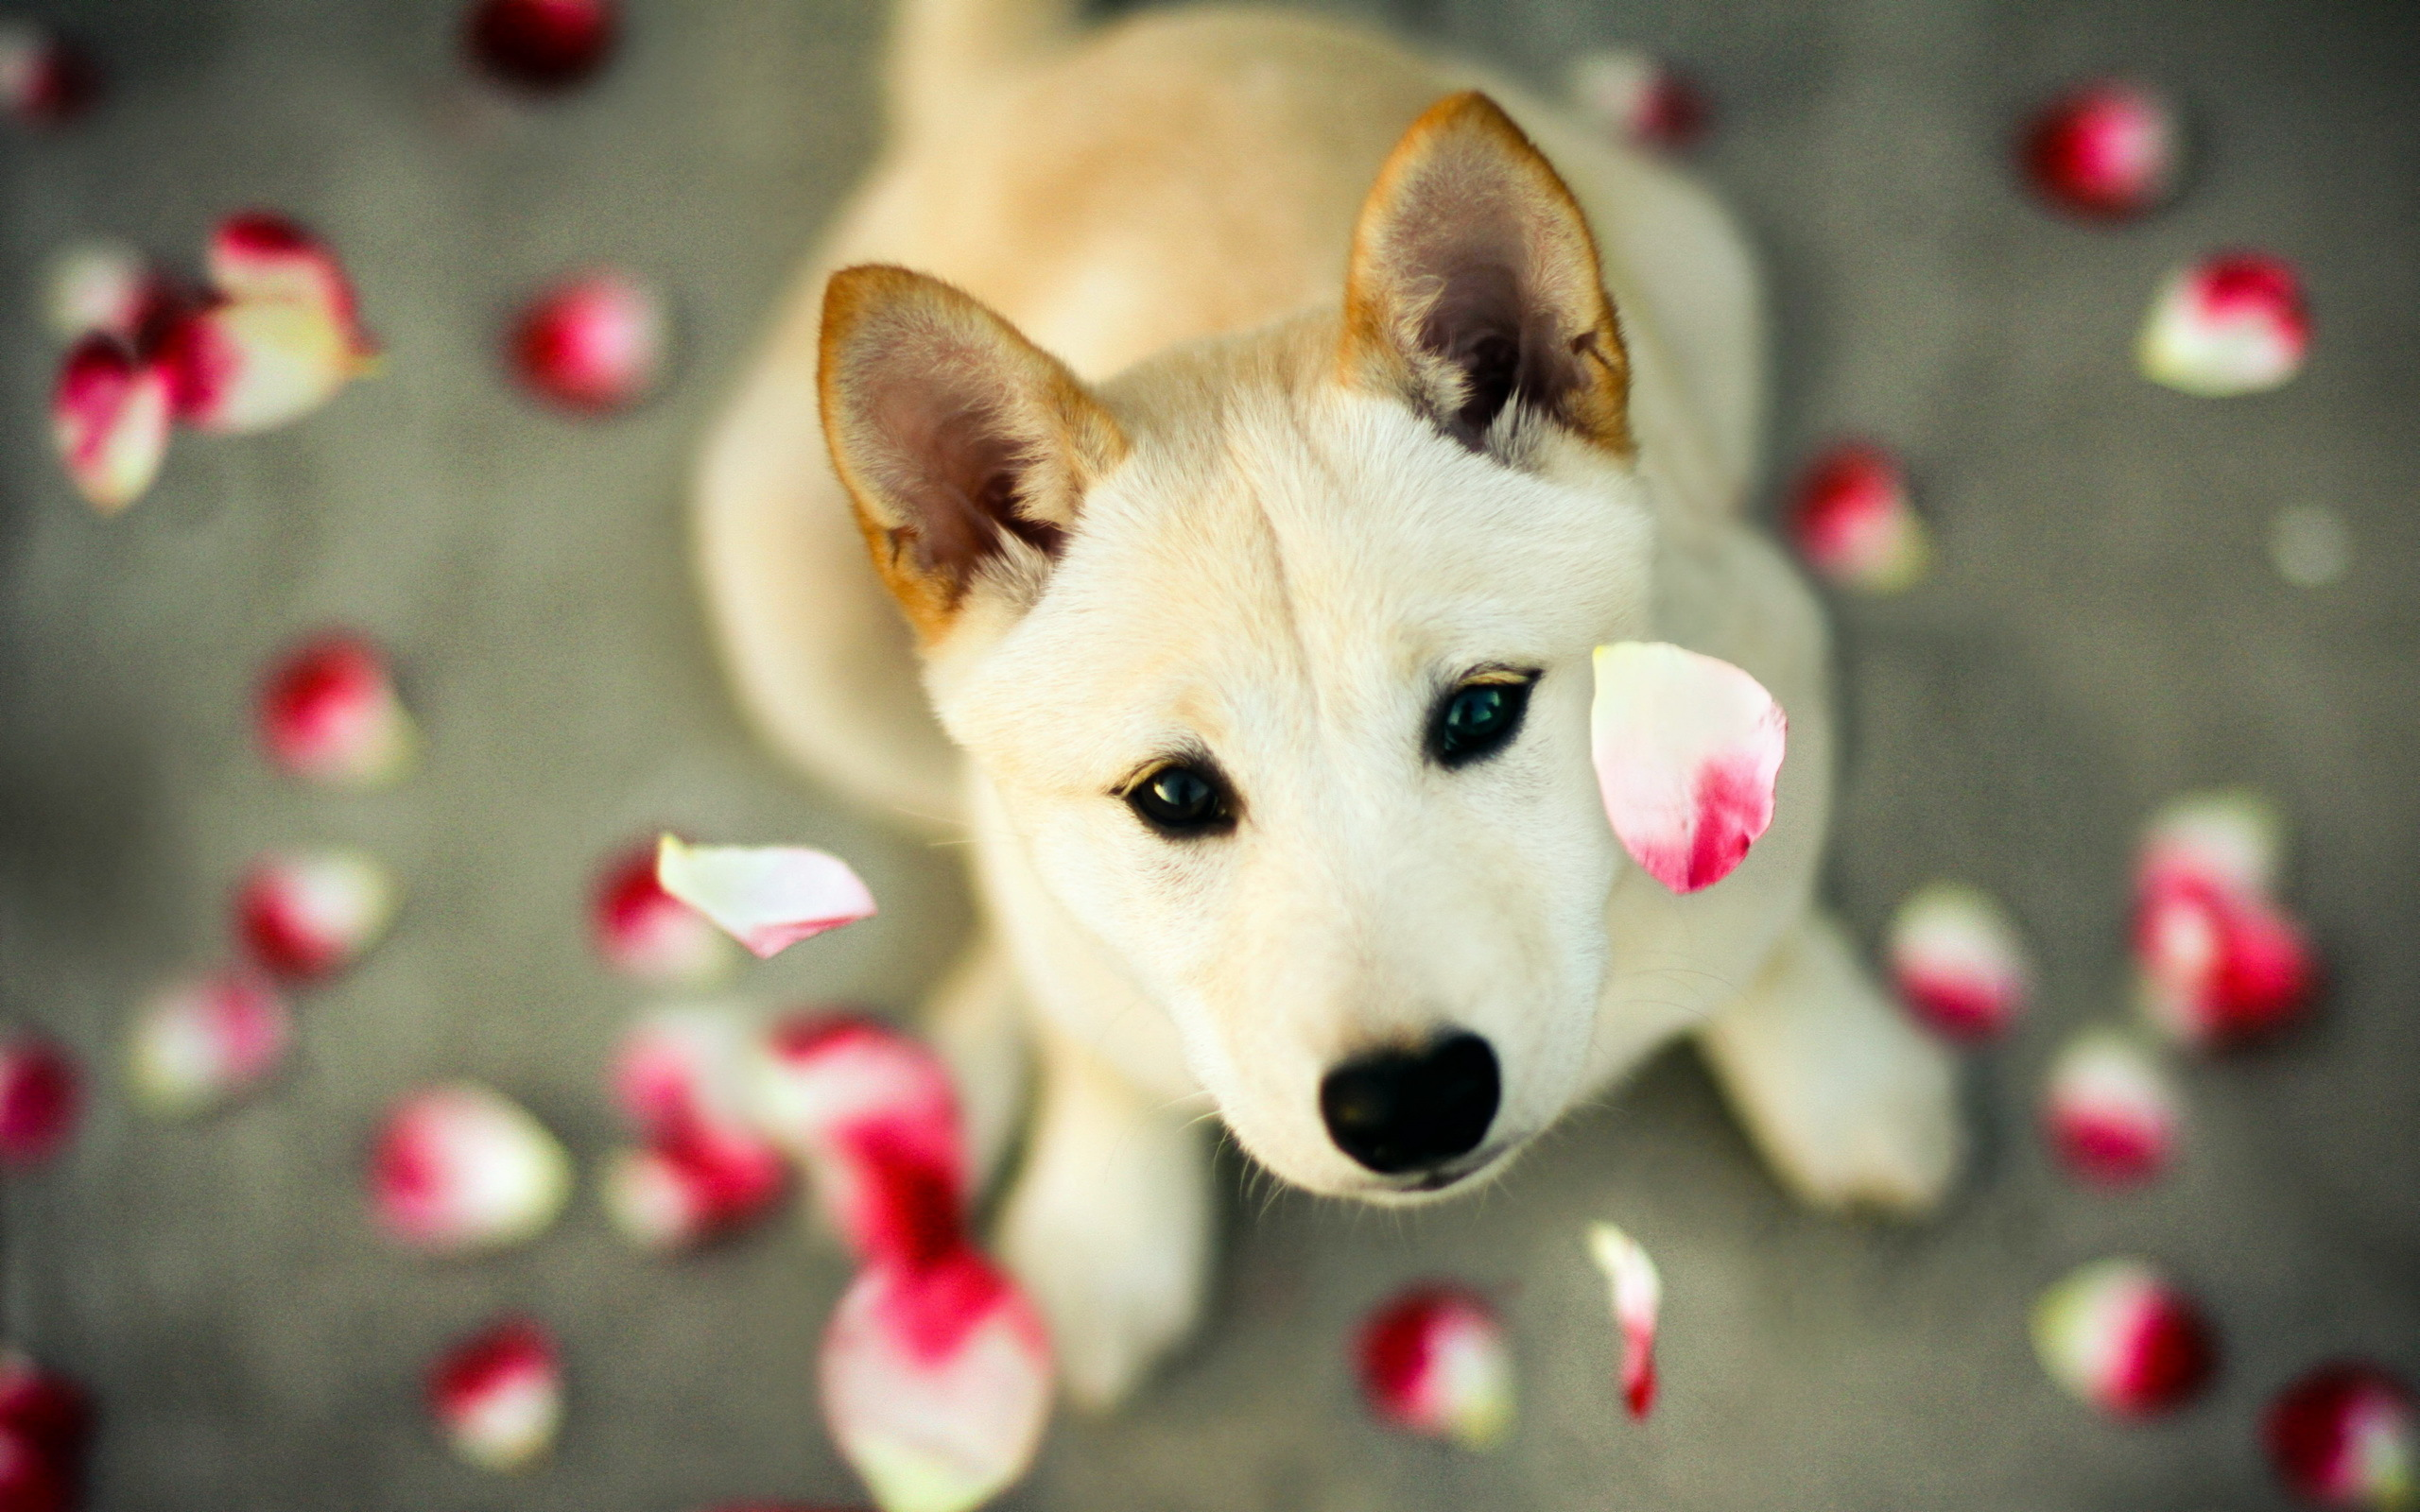 baby and shiba inu wallpaper - photo #13